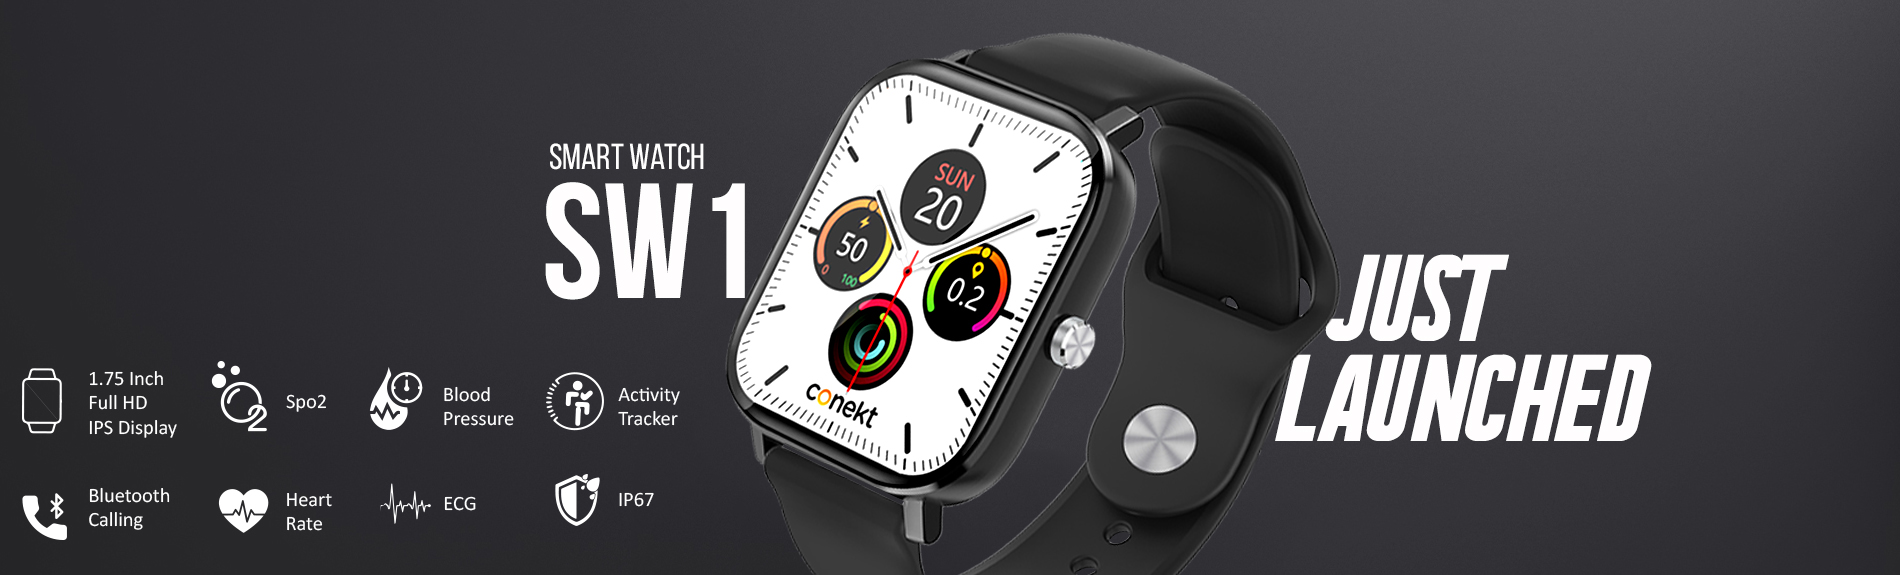 smartwatch with Bluetooth calling